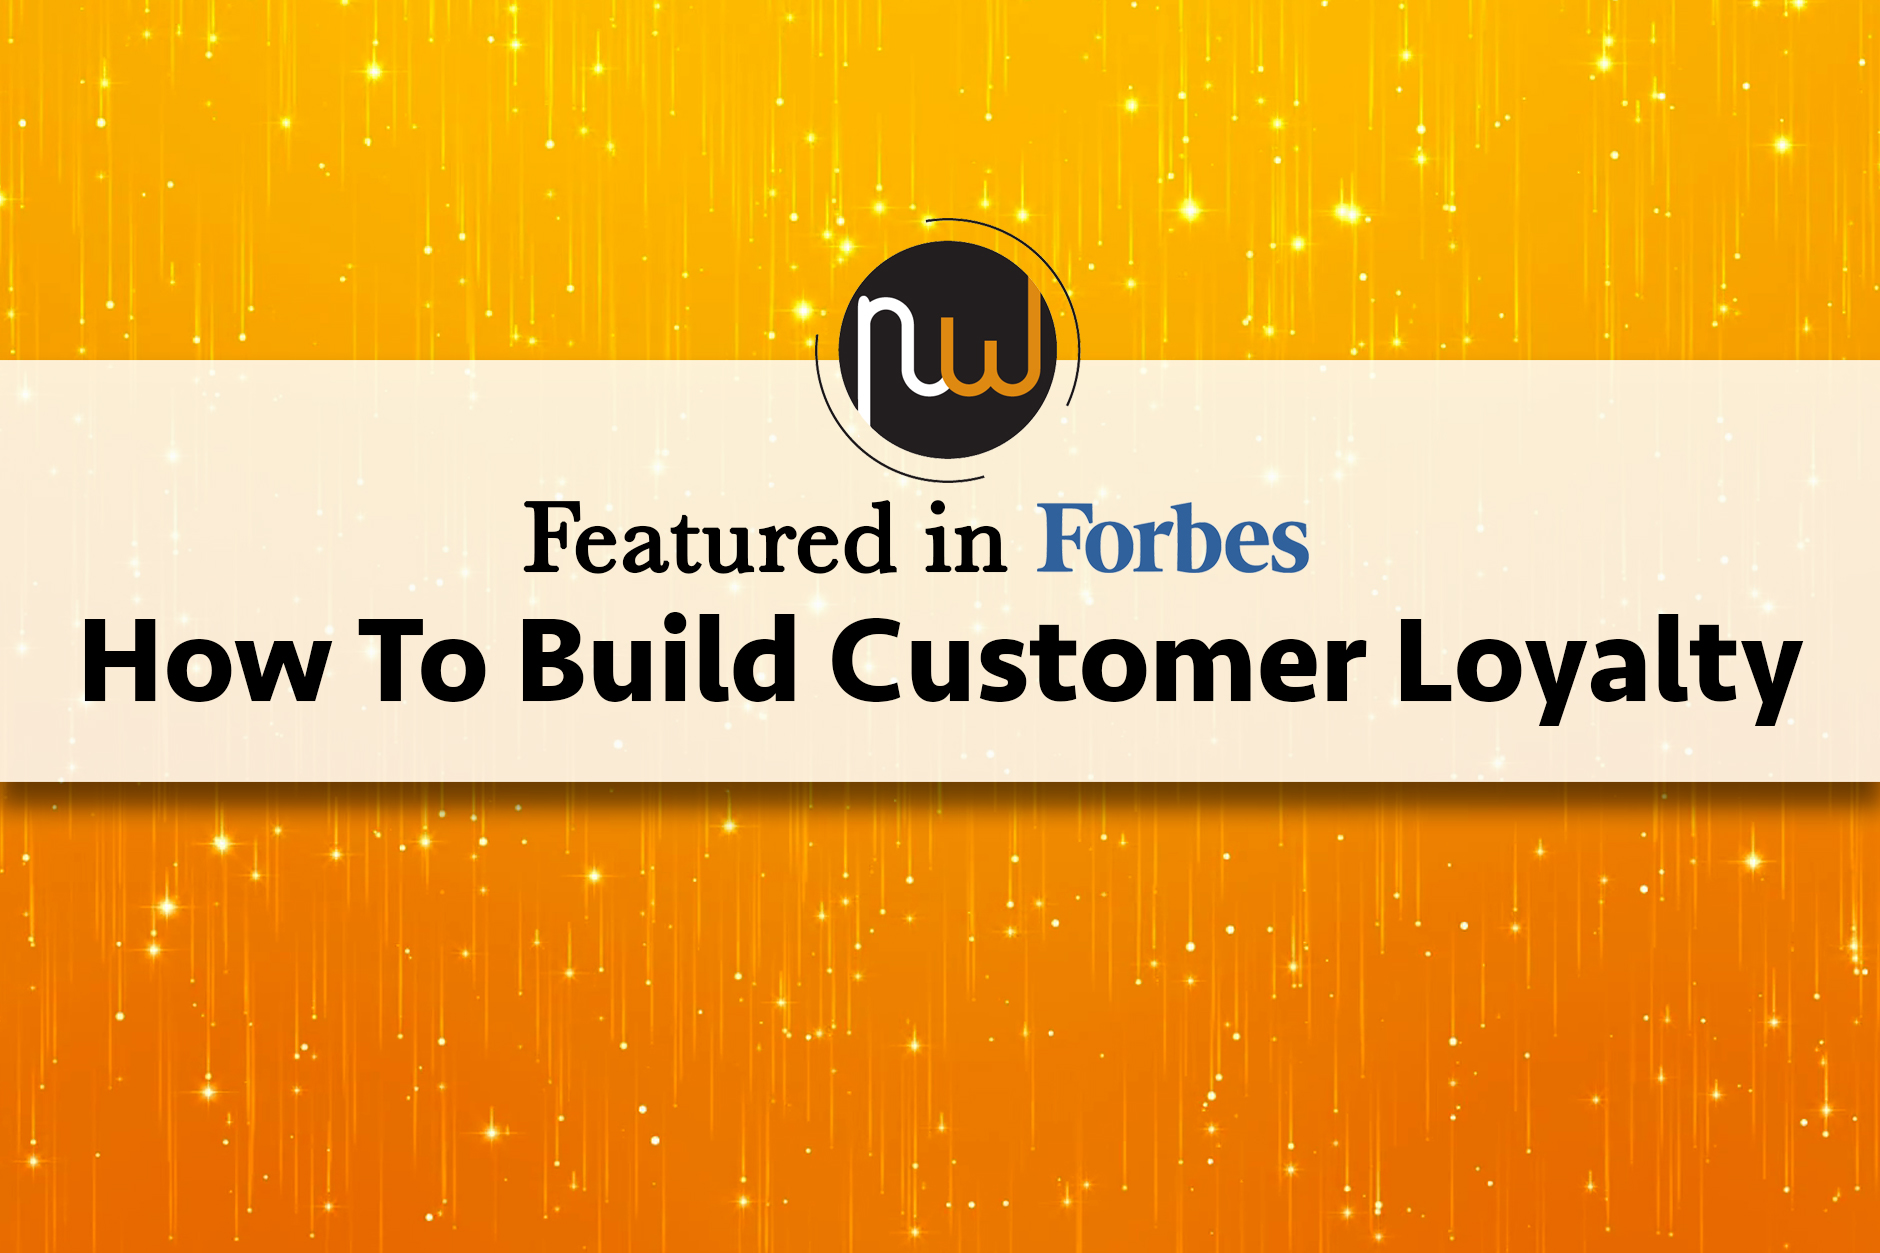 How To Build Customer Loyalty: Featured In Forbes